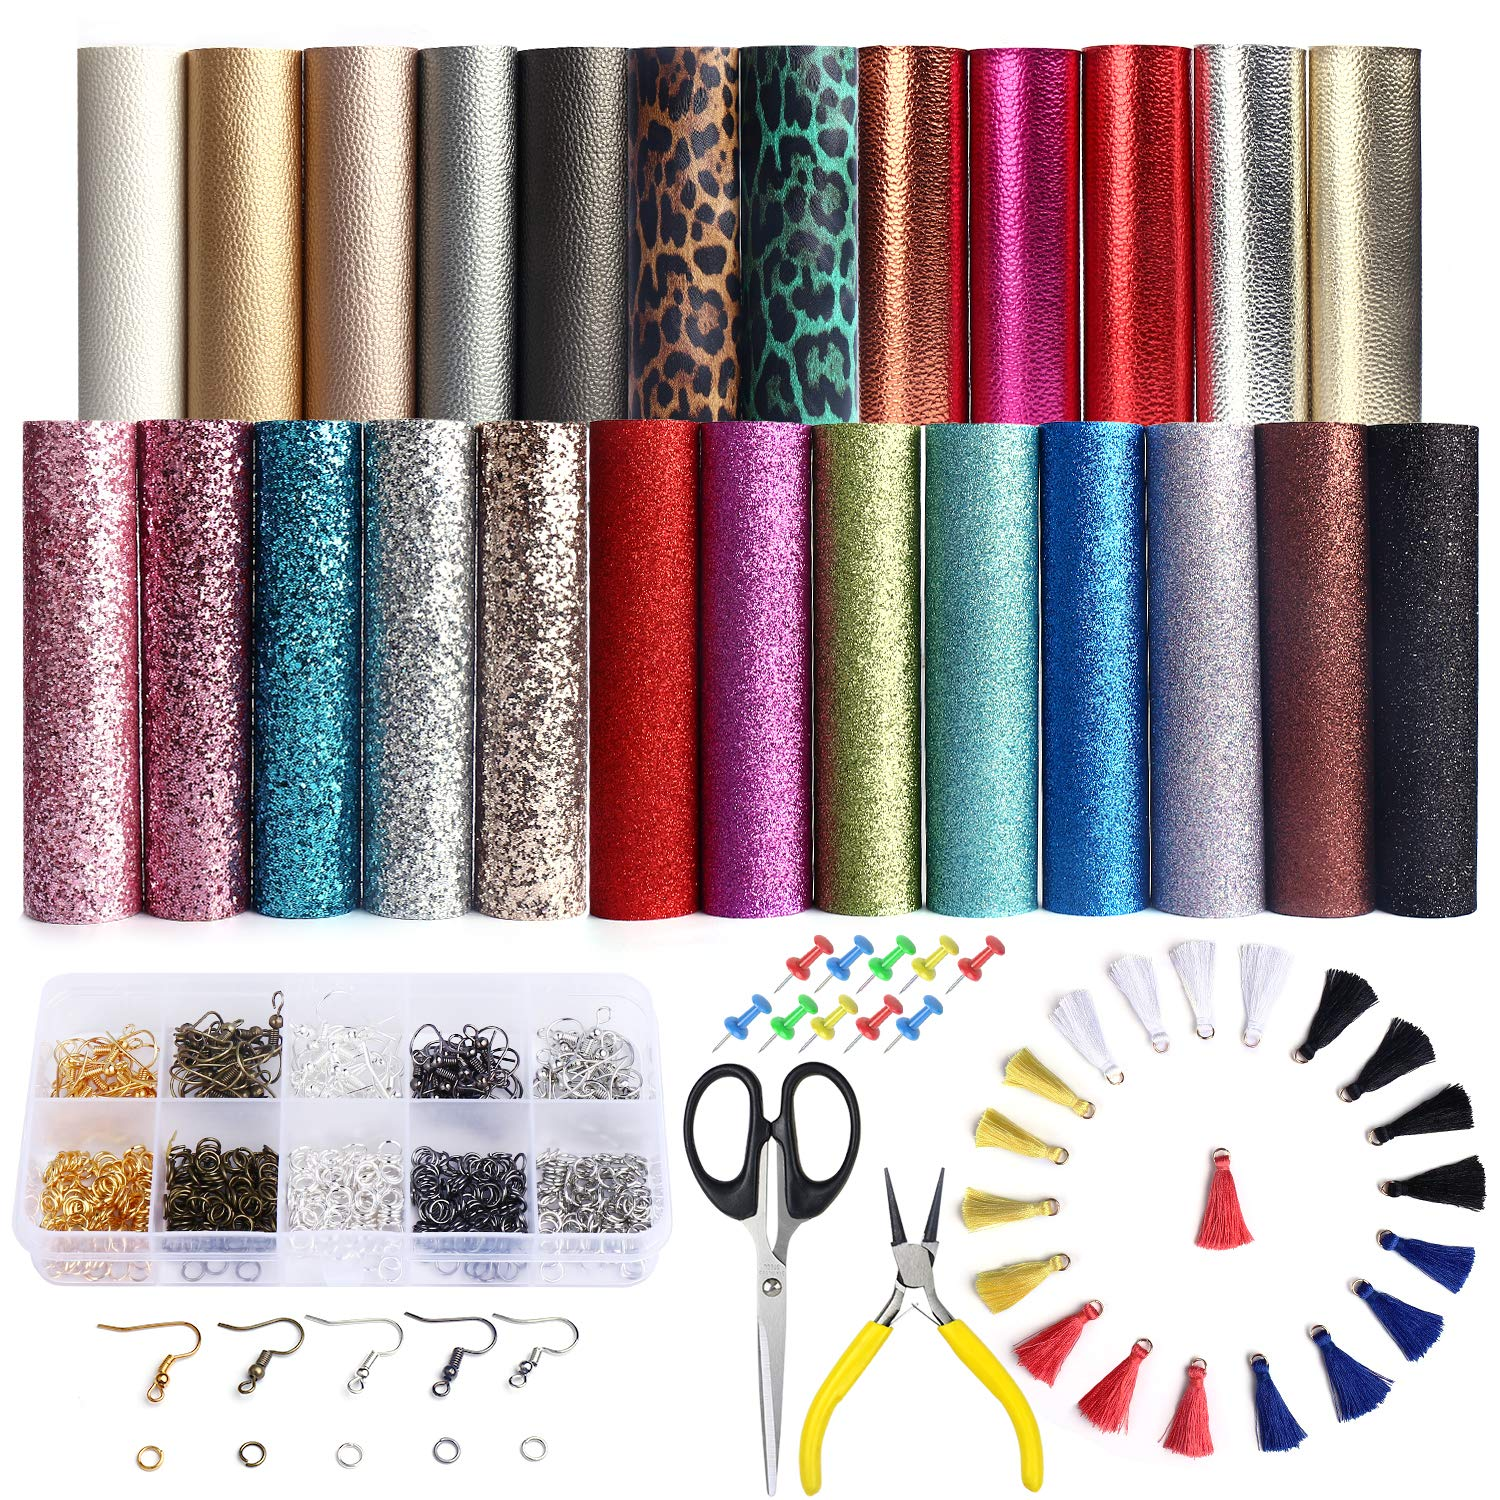 25 PCS A5 Size Faux Leather Sheets, 5 Styles Synthetic Leather Sheets (Super Shiny& Glitter& Pearlized& Metallic& Leopard Printed) with Earring Hooks, Tassel Hoop for Earring Making Crafts by SIMPZIA